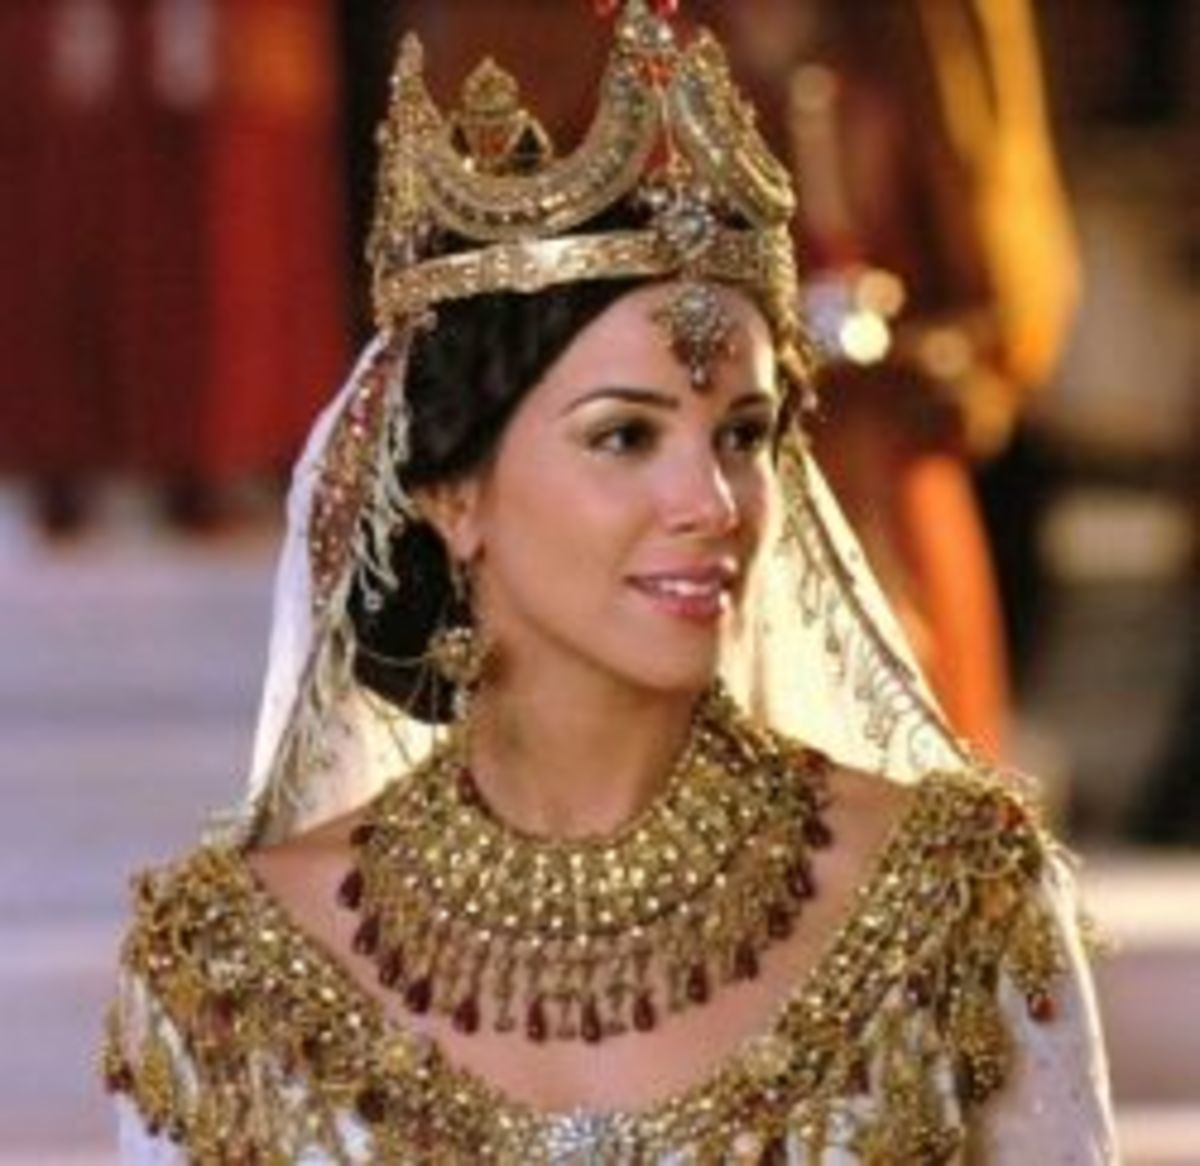 Tiffany Dupont as Hadassah/Esther  from One Night with the King